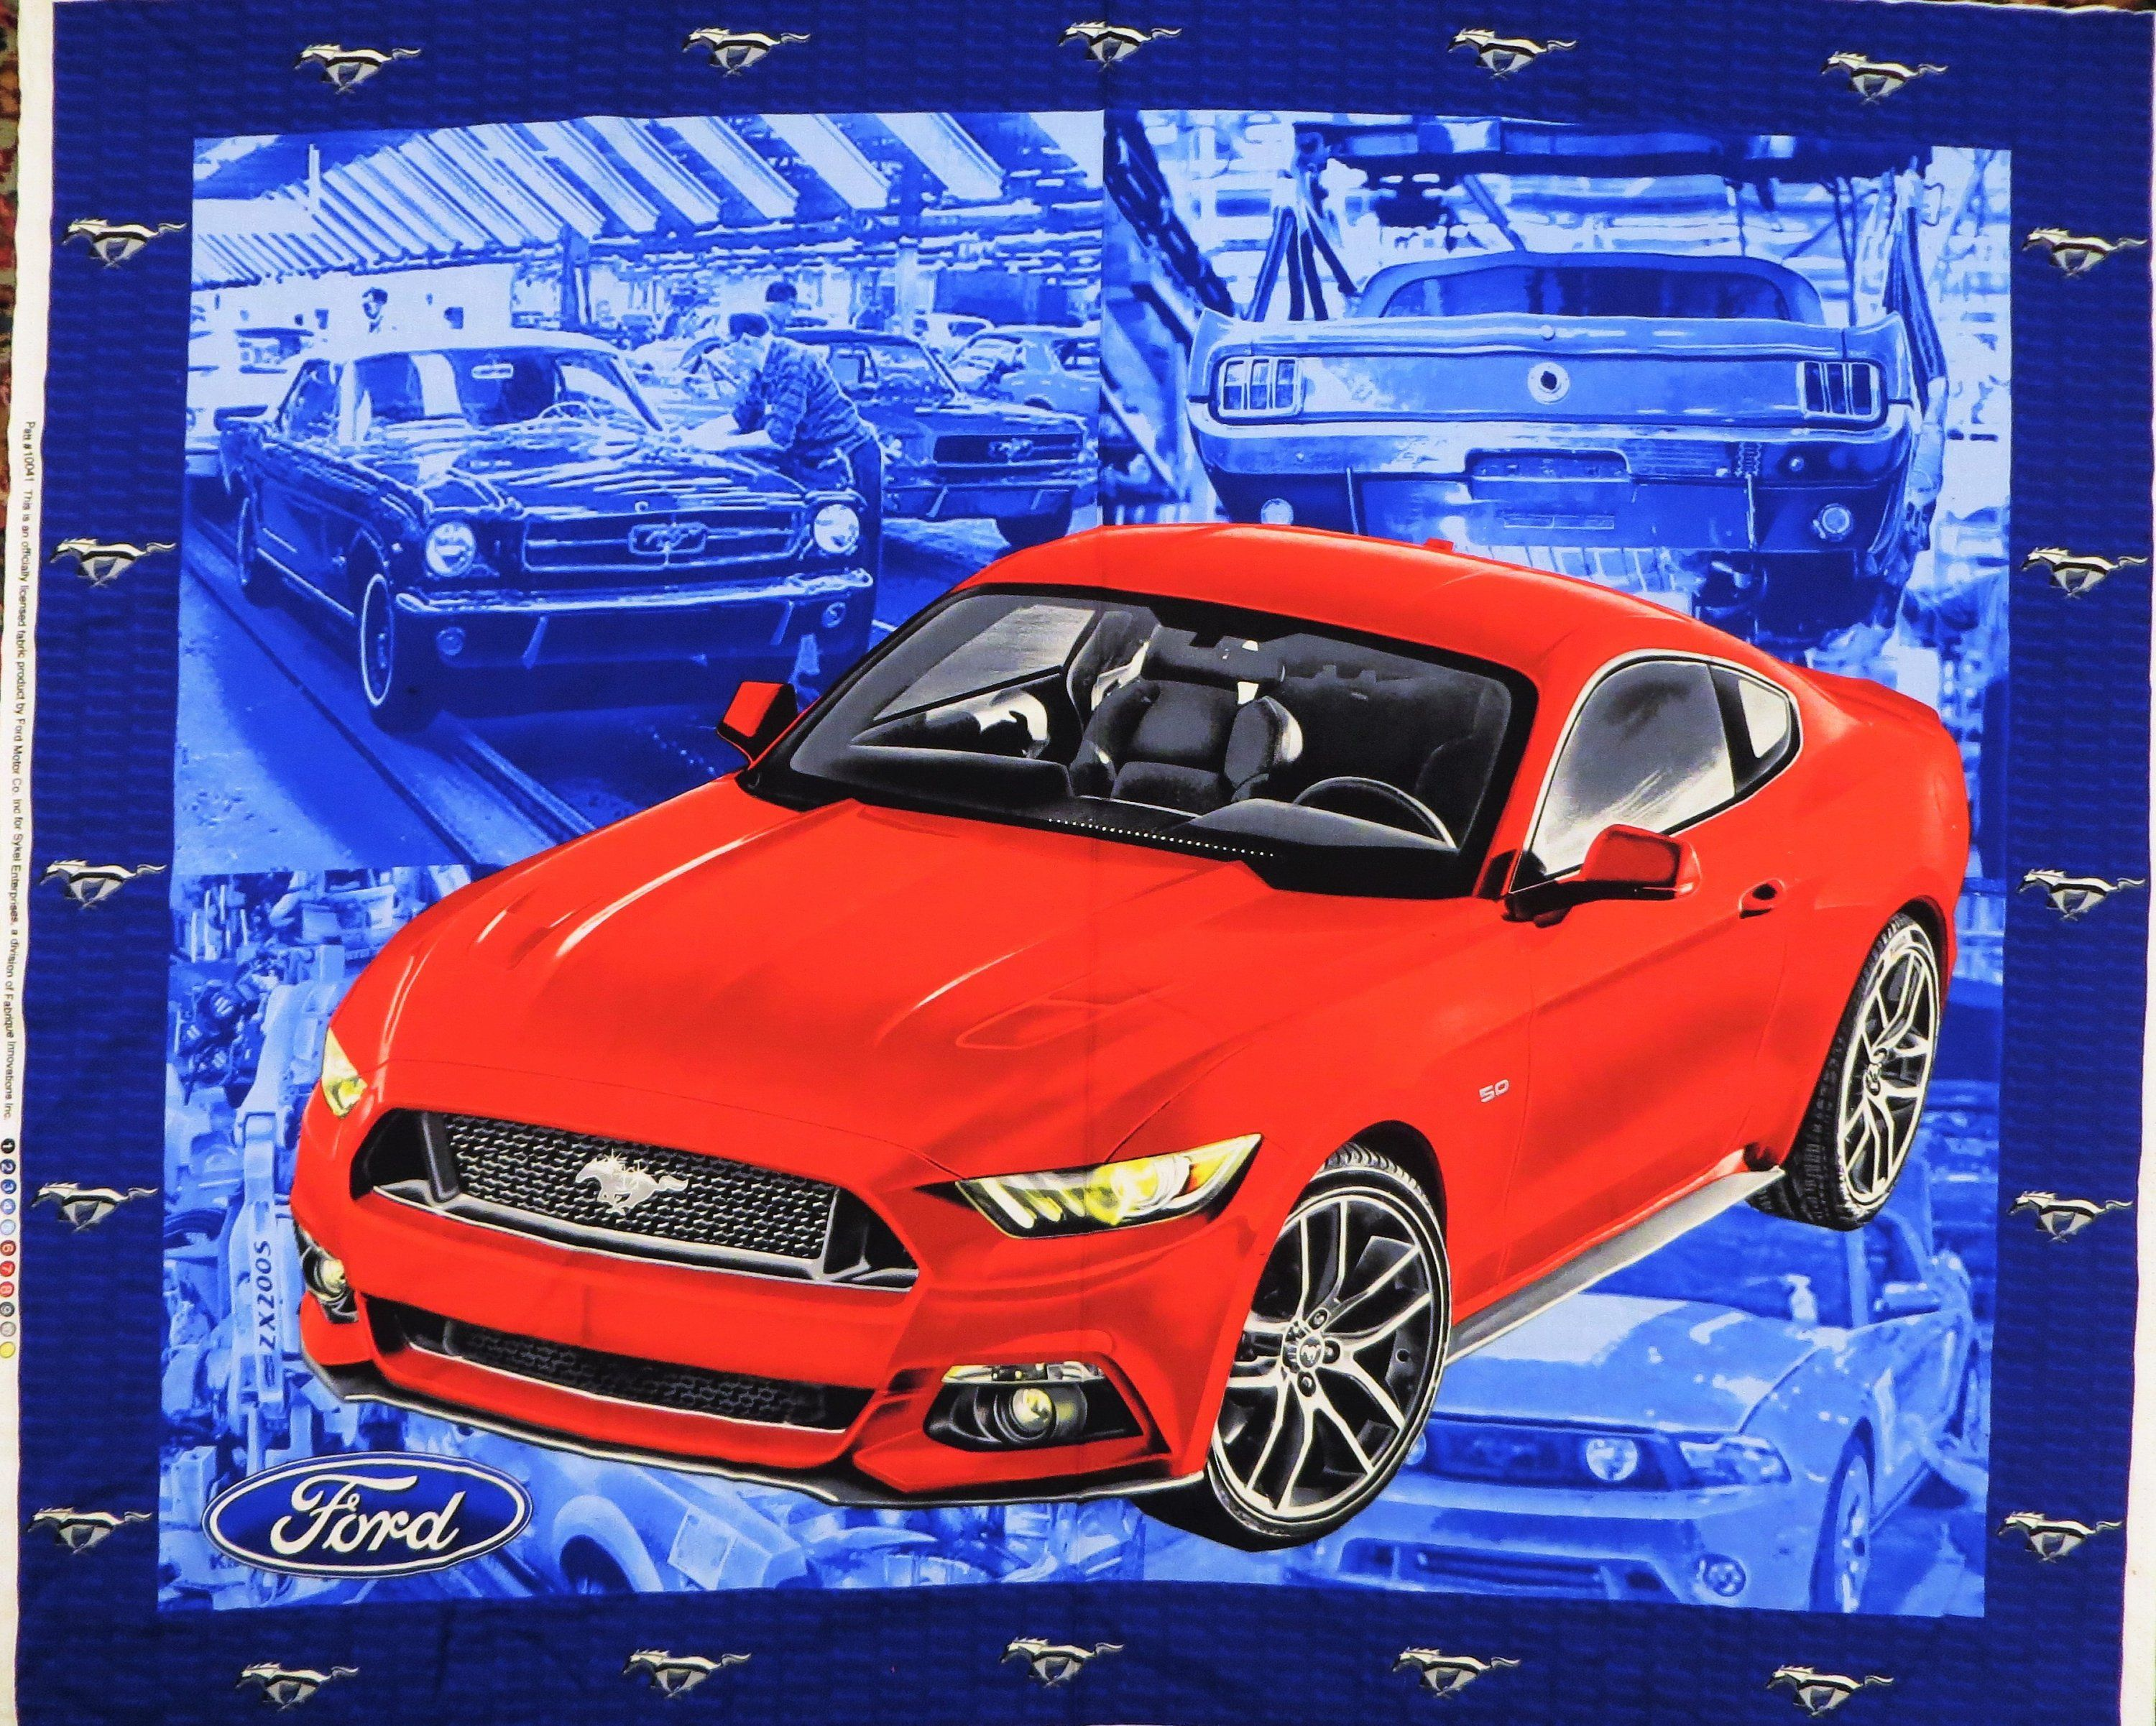 Ford Mustang Fabric Panel, Bright Red Car, Blue Background, Classic Cars, Cotton Quilting Fabric, Licensed Ford Motor Co, 35 x 44 inches